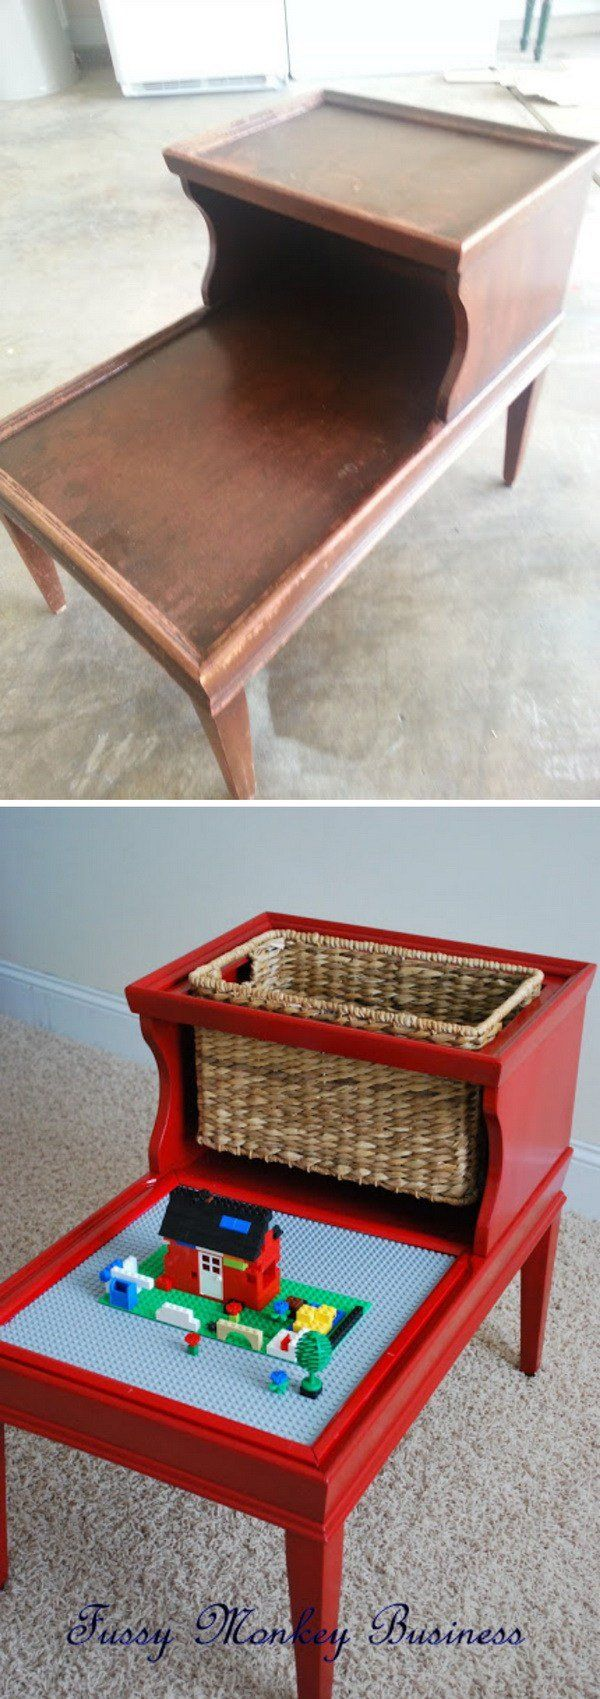 old furniture makeovers. 40 High Style Low-Budget Furniture Makeovers You Could Definitely Do Old A